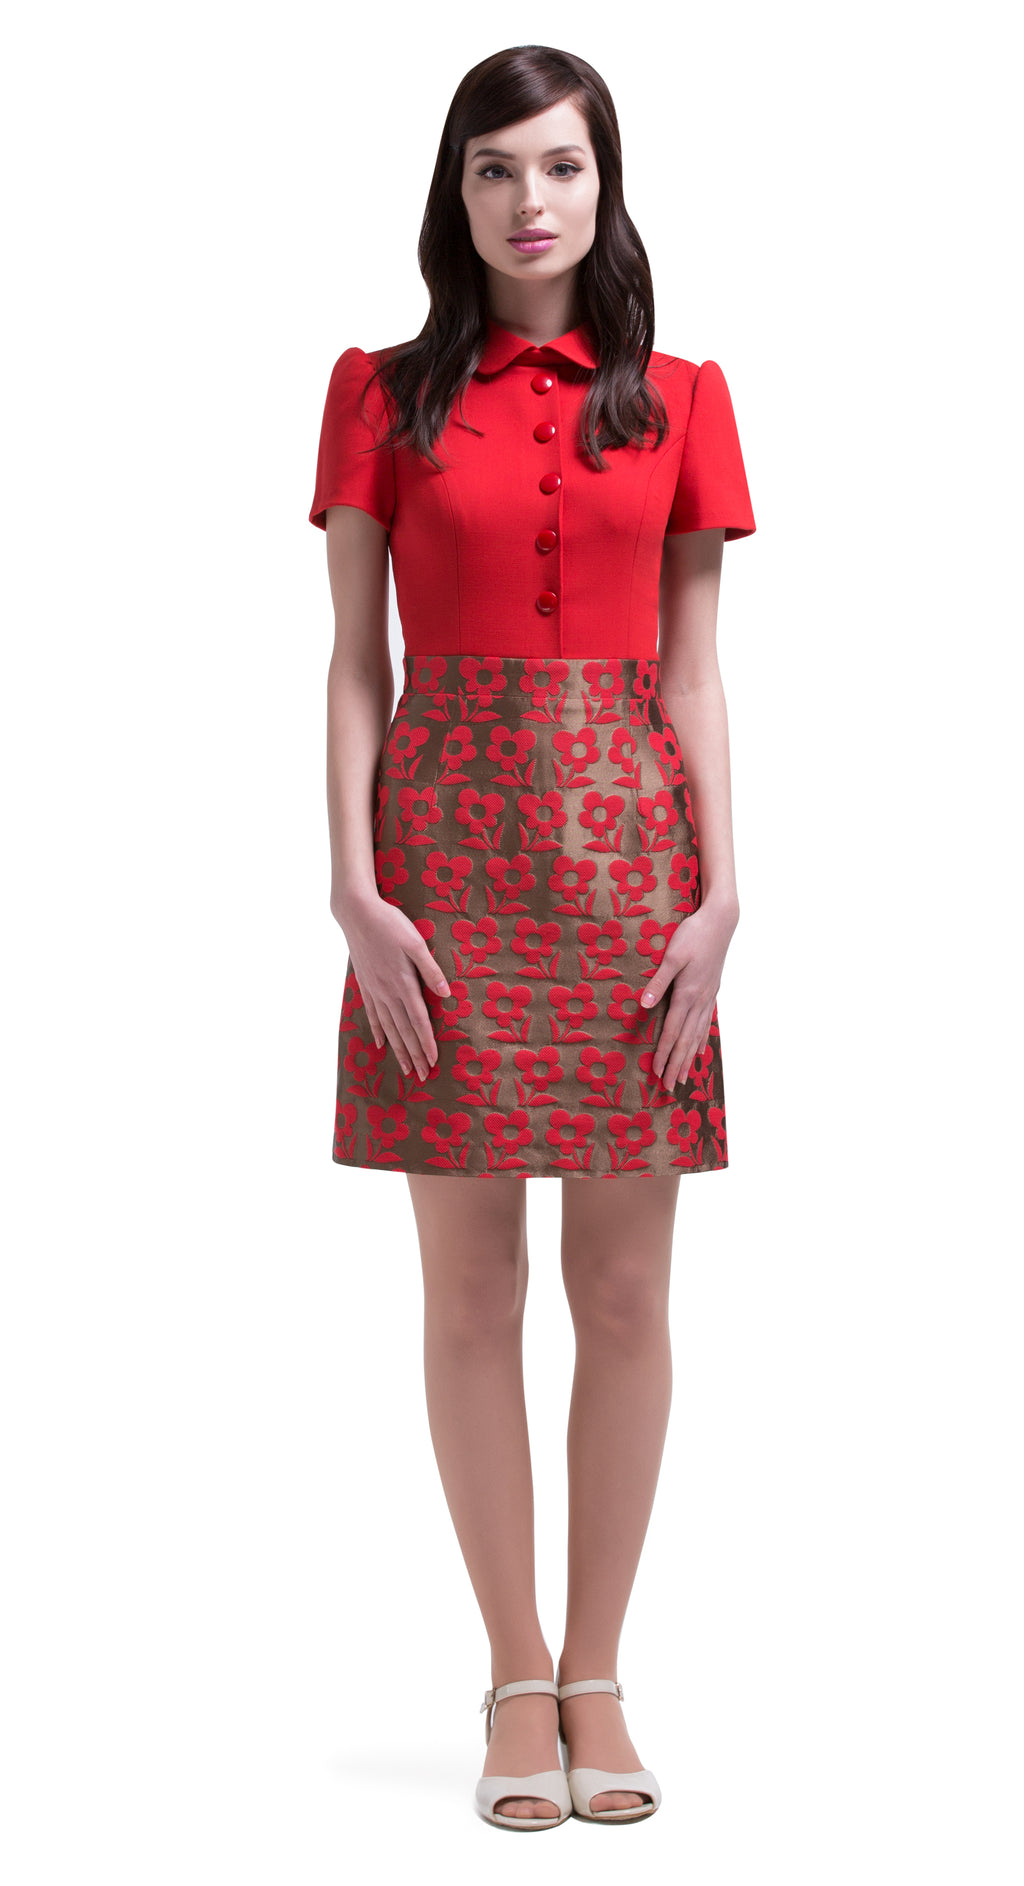 This cherry red and light copper, vintage style work or play style dress is immediately striking in its simplicity. A straight cut piece, with an elegant detailed bodice showcasing five button detailing, rounded collar and slightly puffed sleeves sits perfectly atop a stunning French mill floral embossed weave skirt.  Choose bespoke for alternative sleeve or skirt lengths.